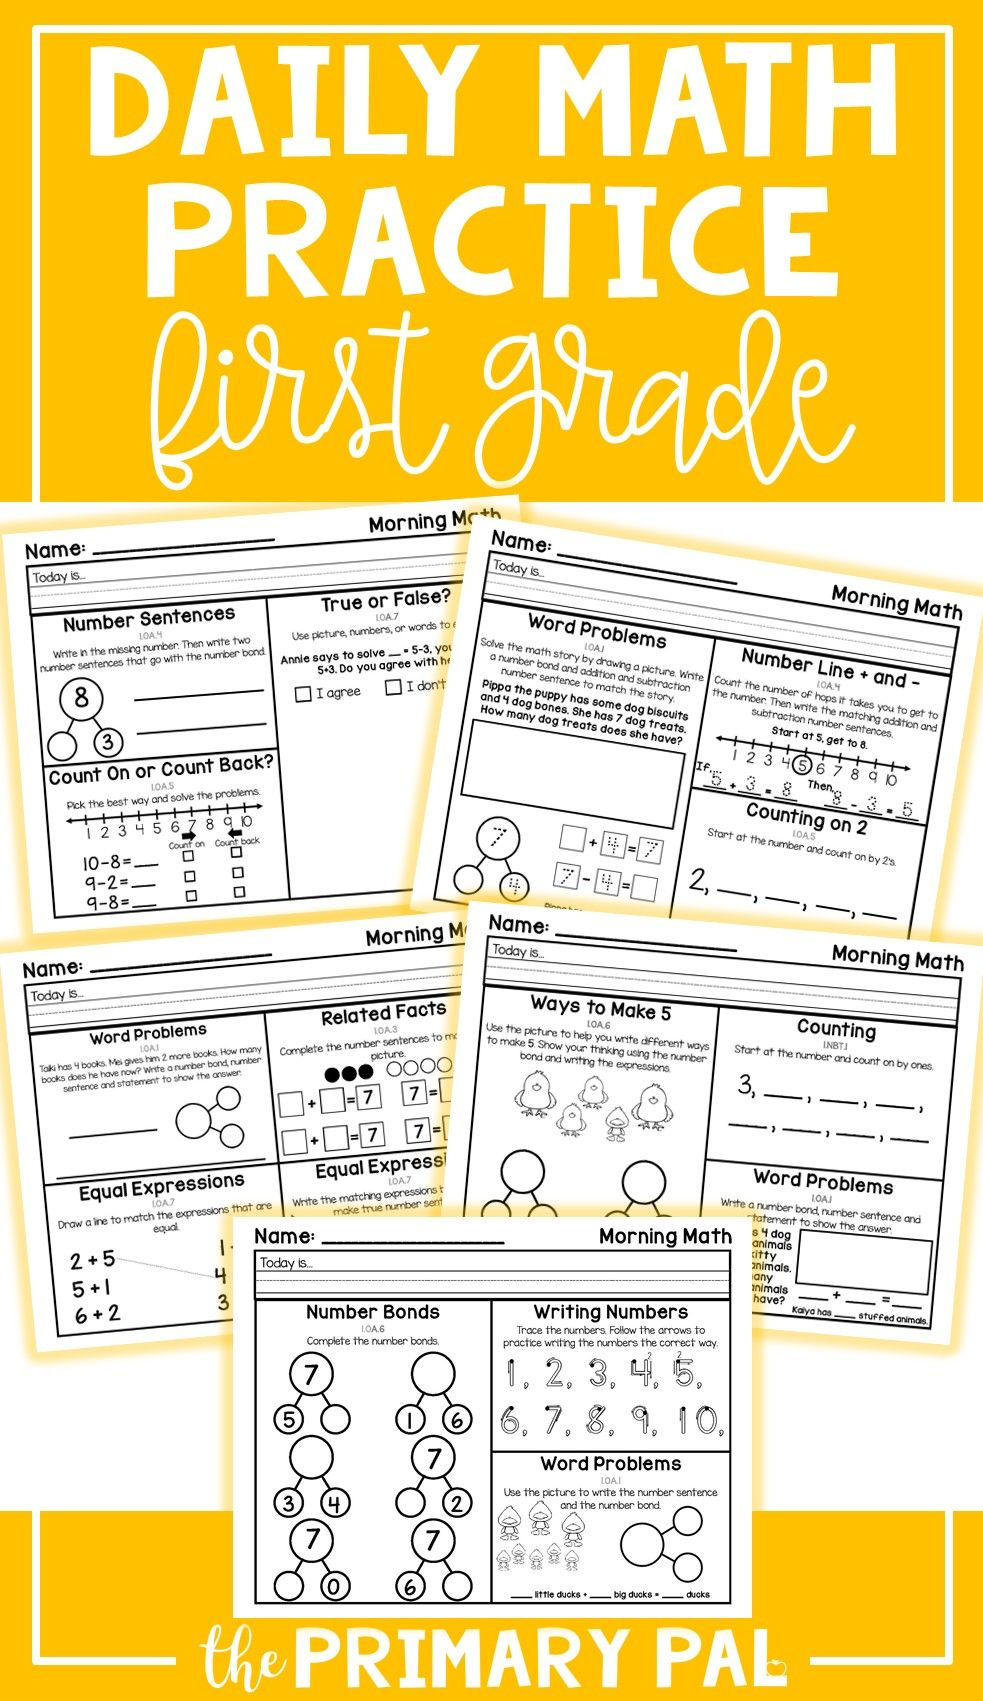 Perfect For Establishing A Daily Routine That Supports The Development Of Math Skills In 1st Grade Each Prac First Grade Math First Grade Math Worksheets Math [ 1701 x 983 Pixel ]